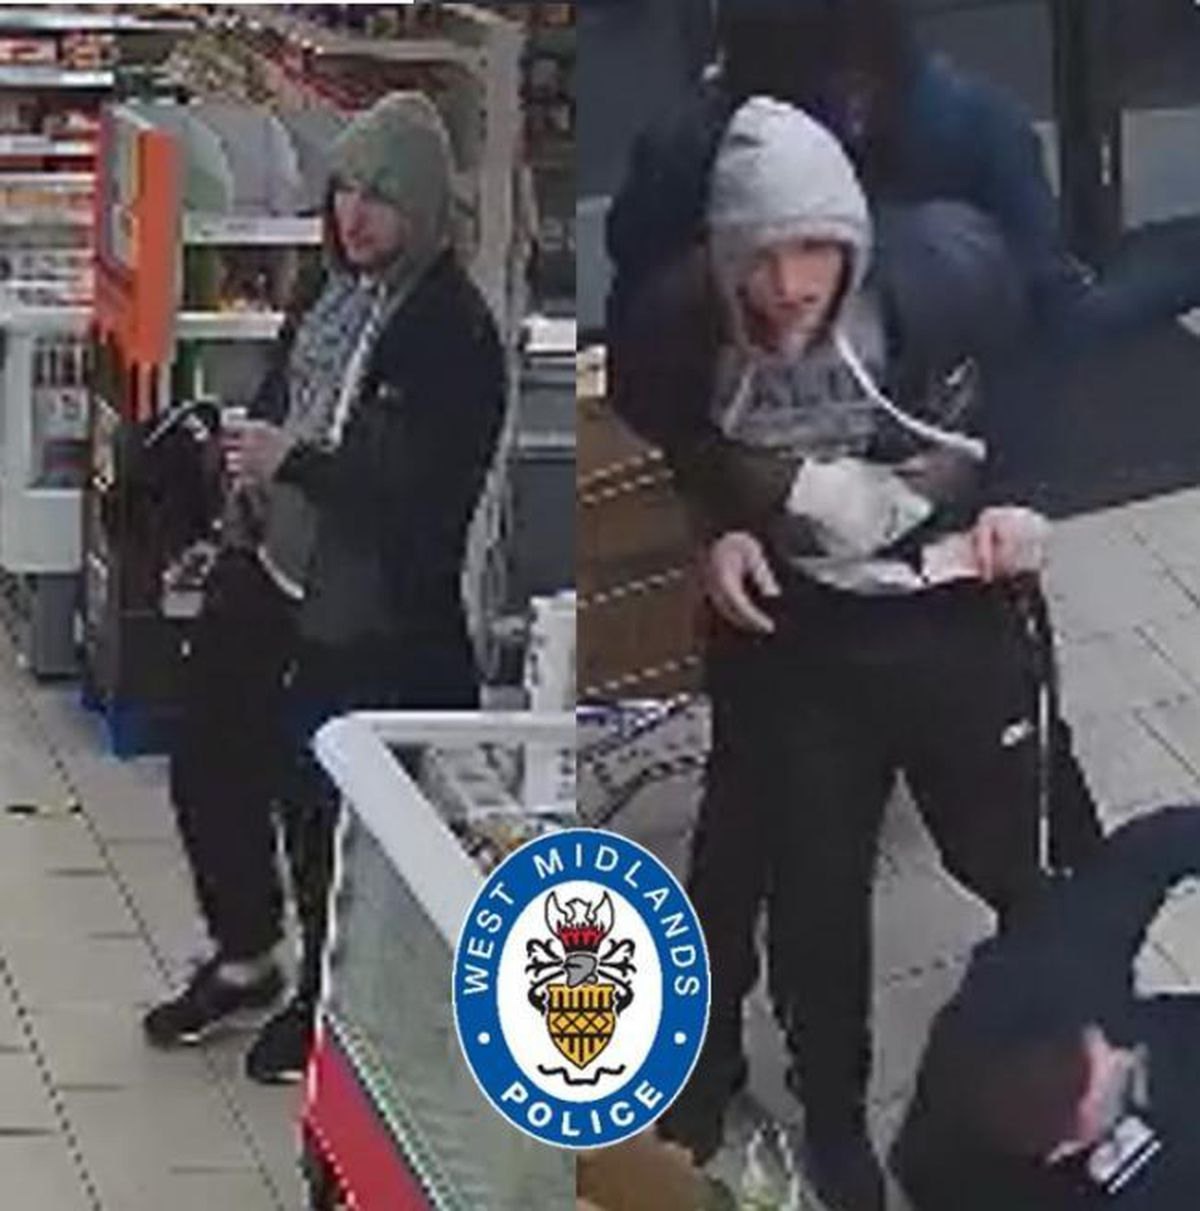 Police have released CCTV images of a man they would like to speak to. (Image: @TiptonWMP)